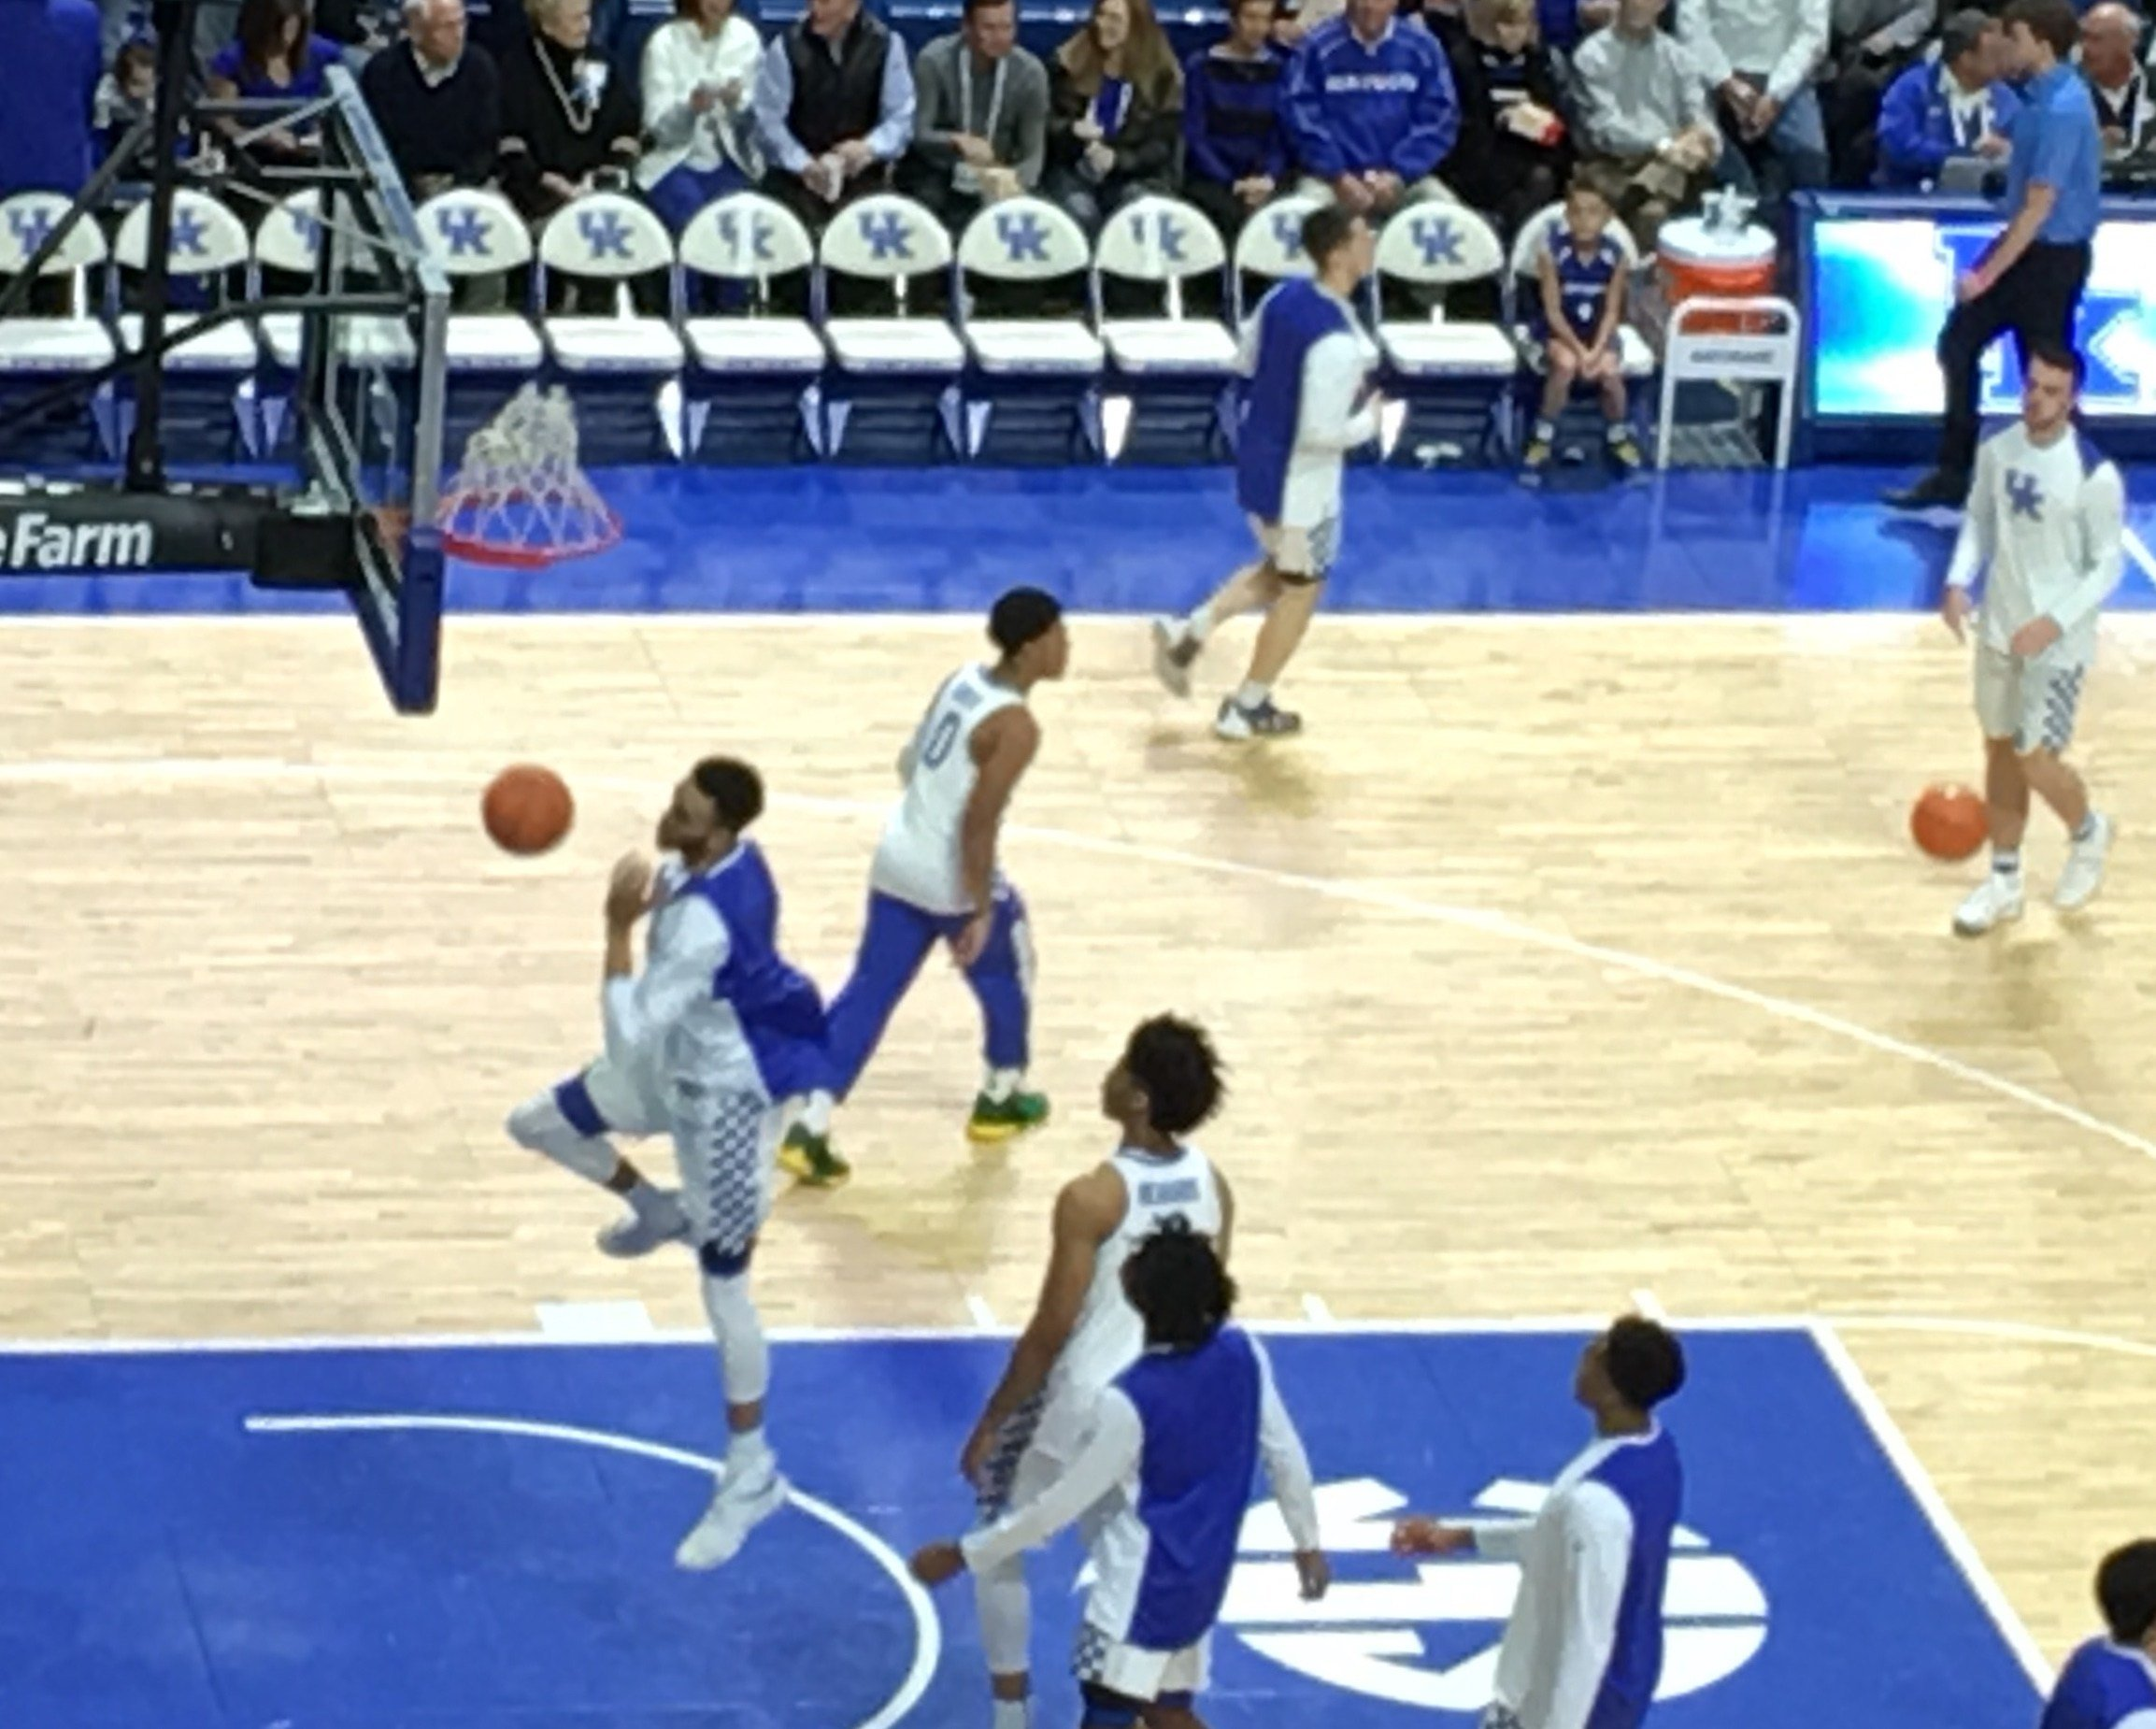 Kentucky defeats Fort Wayne, 86-67